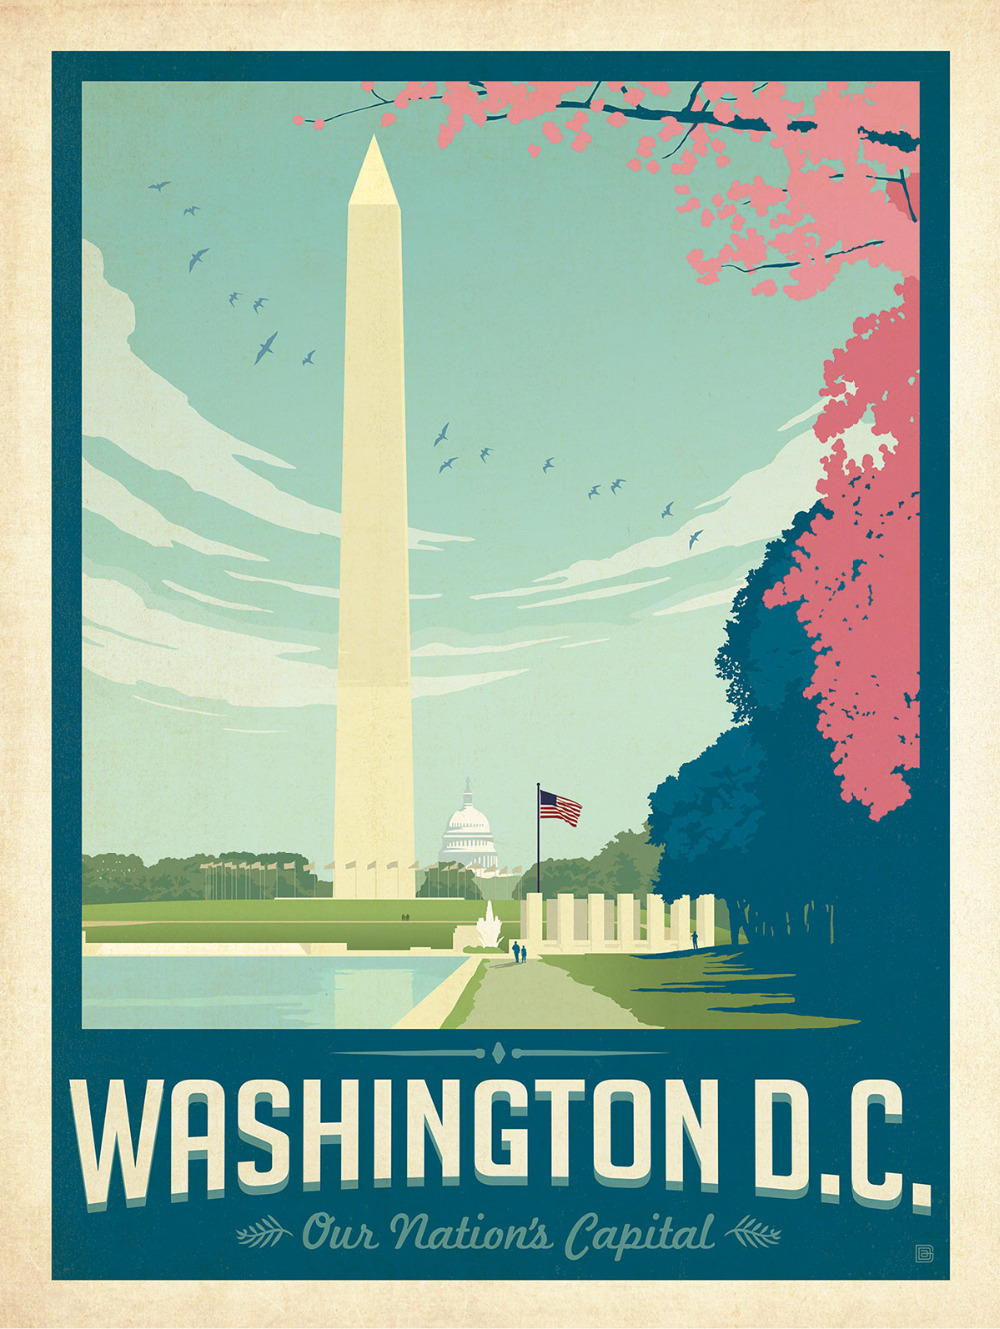 Washington Dc Wall Art compare prices on washington dc art- online shopping/buy low price